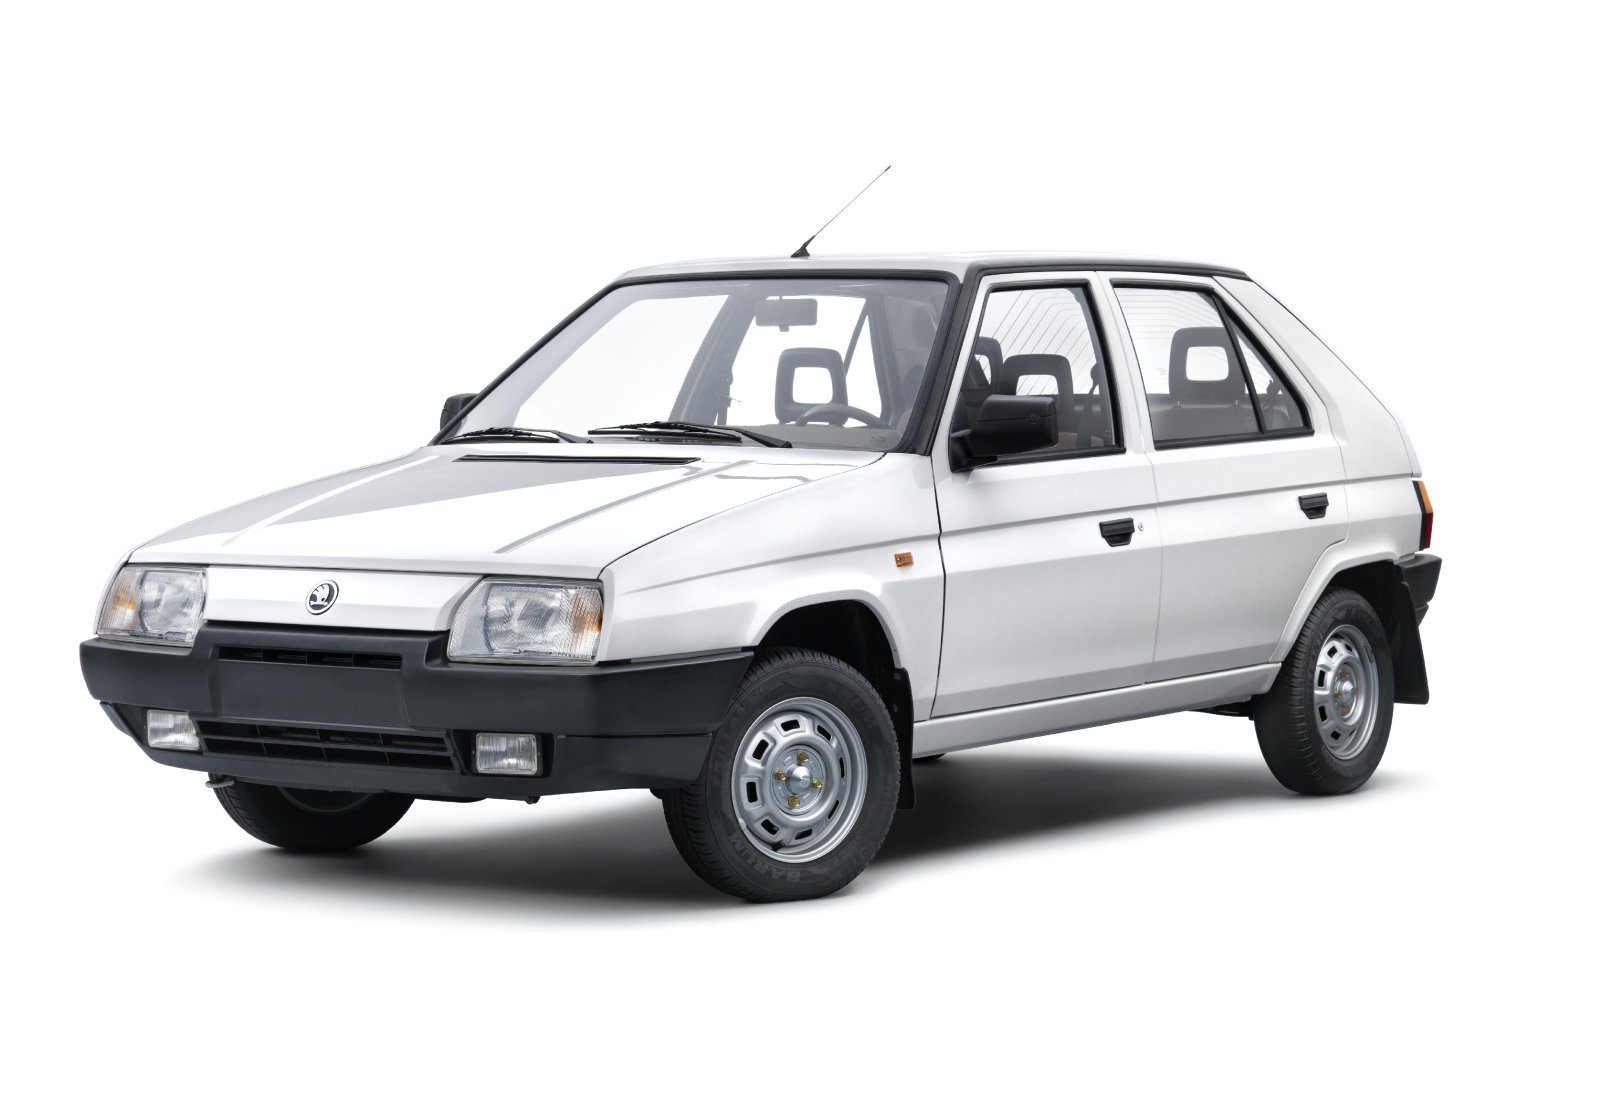 Skoda Favorit (1987-1995)